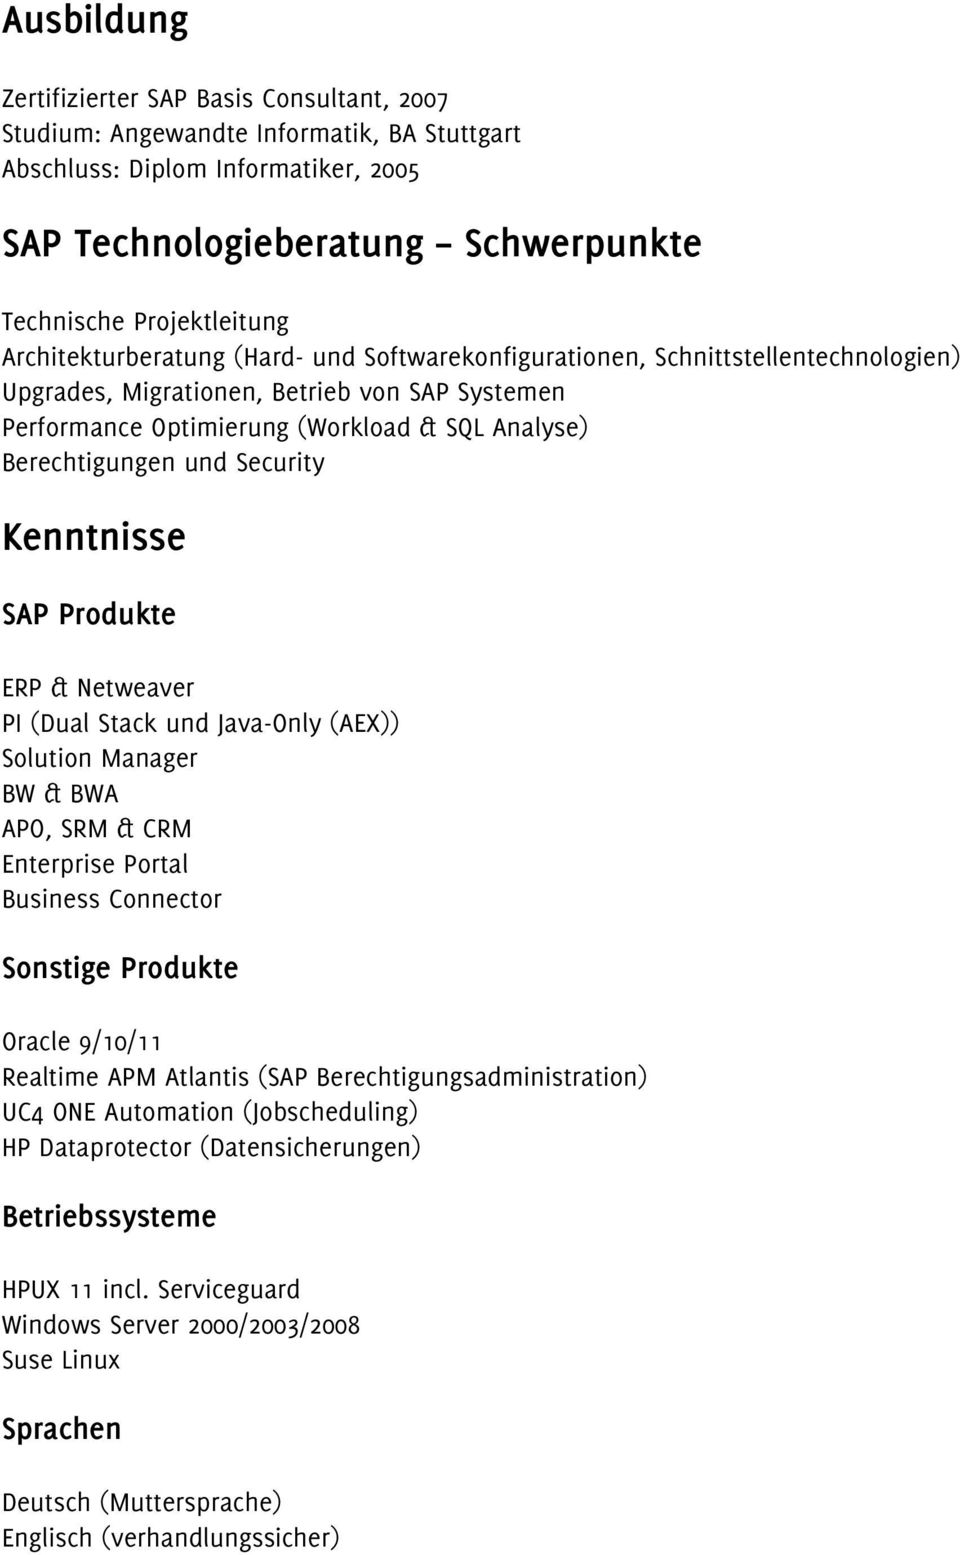 Security Kenntnisse SAP Produkte ERP & Netweaver PI (Dual Stack und Java-Only (AEX)) Solution Manager BW & BWA APO, SRM & CRM Enterprise Portal Business Connector Sonstige Produkte Oracle 9/10/11